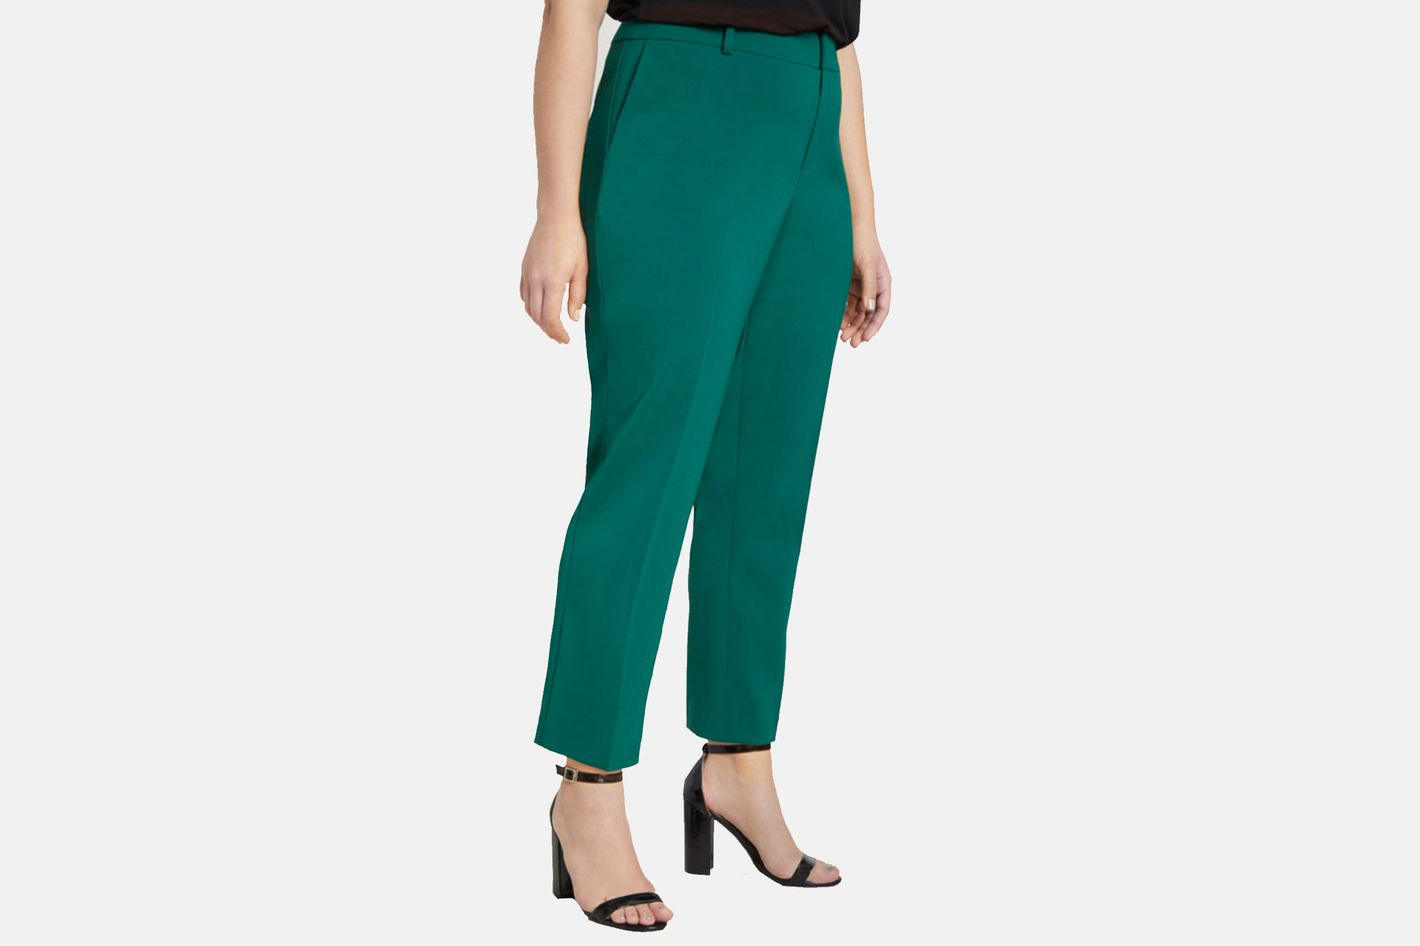 Jason Wu/ELOQUII Tapered Leg Trouser